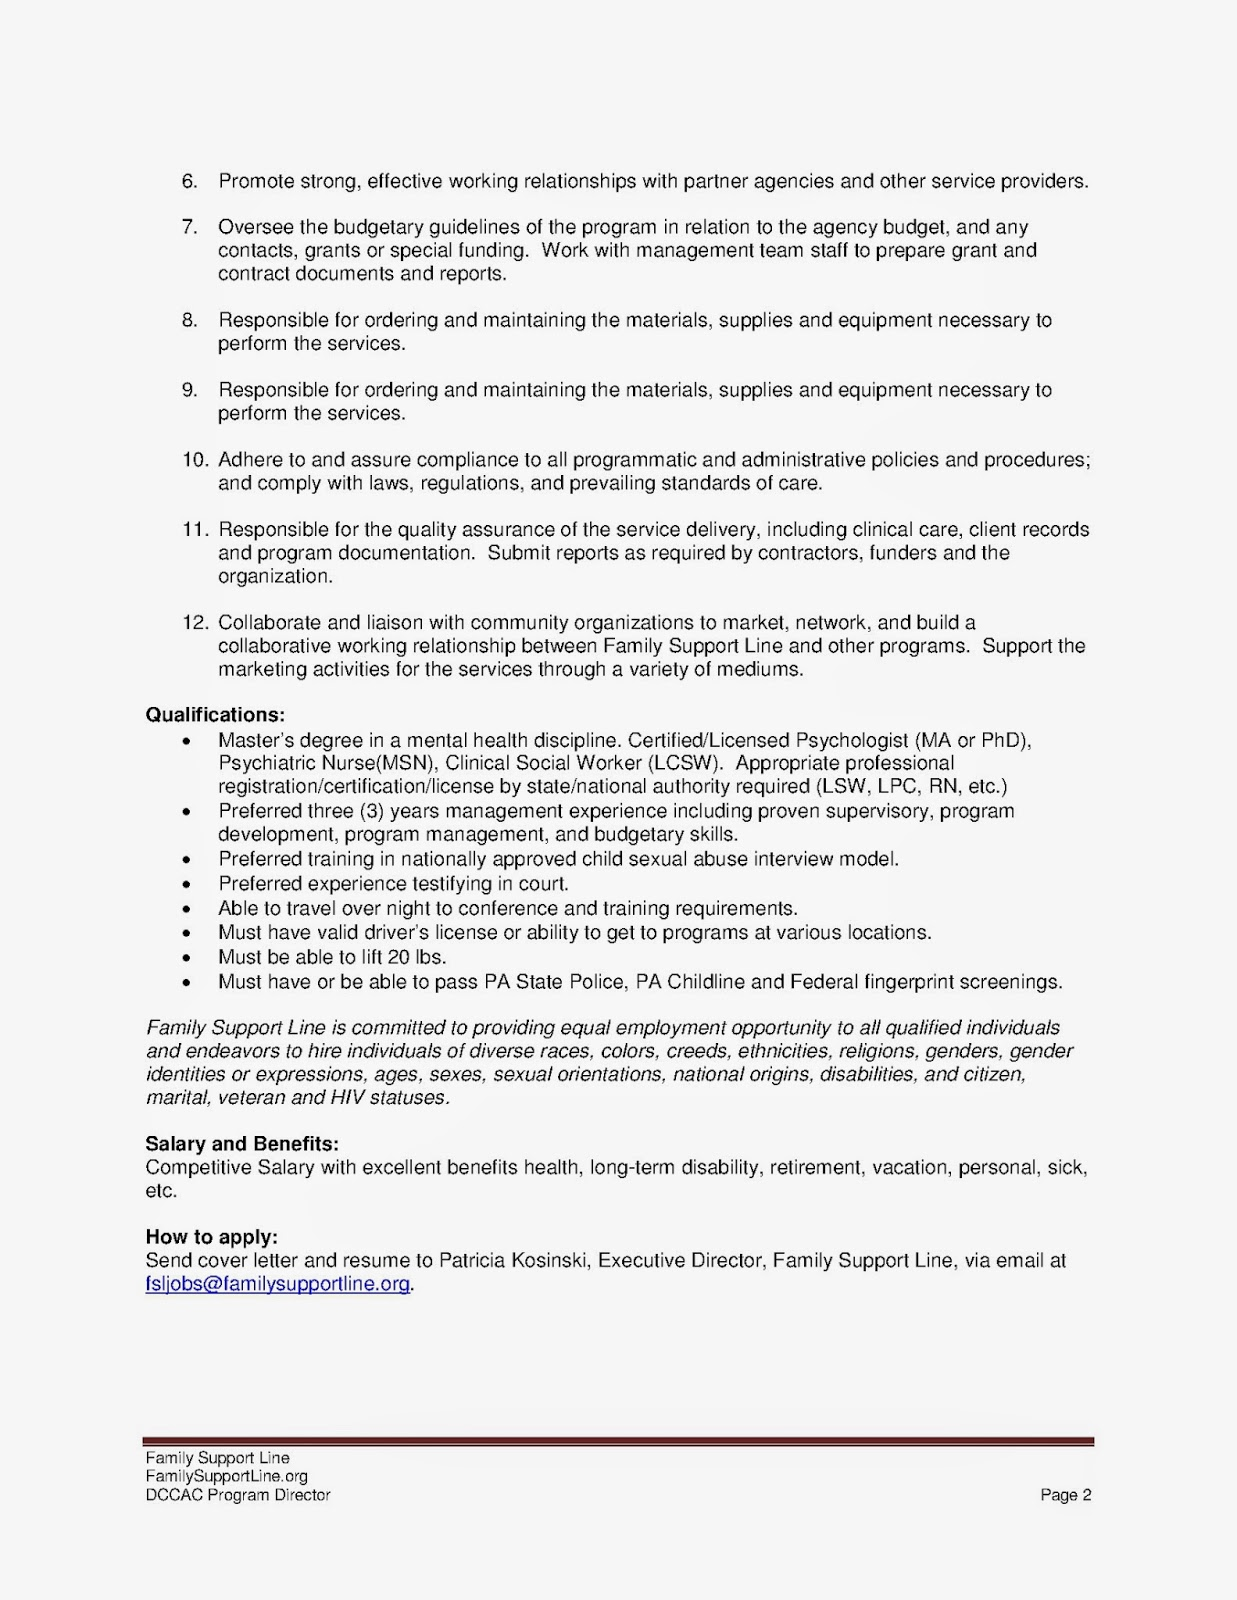 Cover Letter For Biomedical Internship Job Application